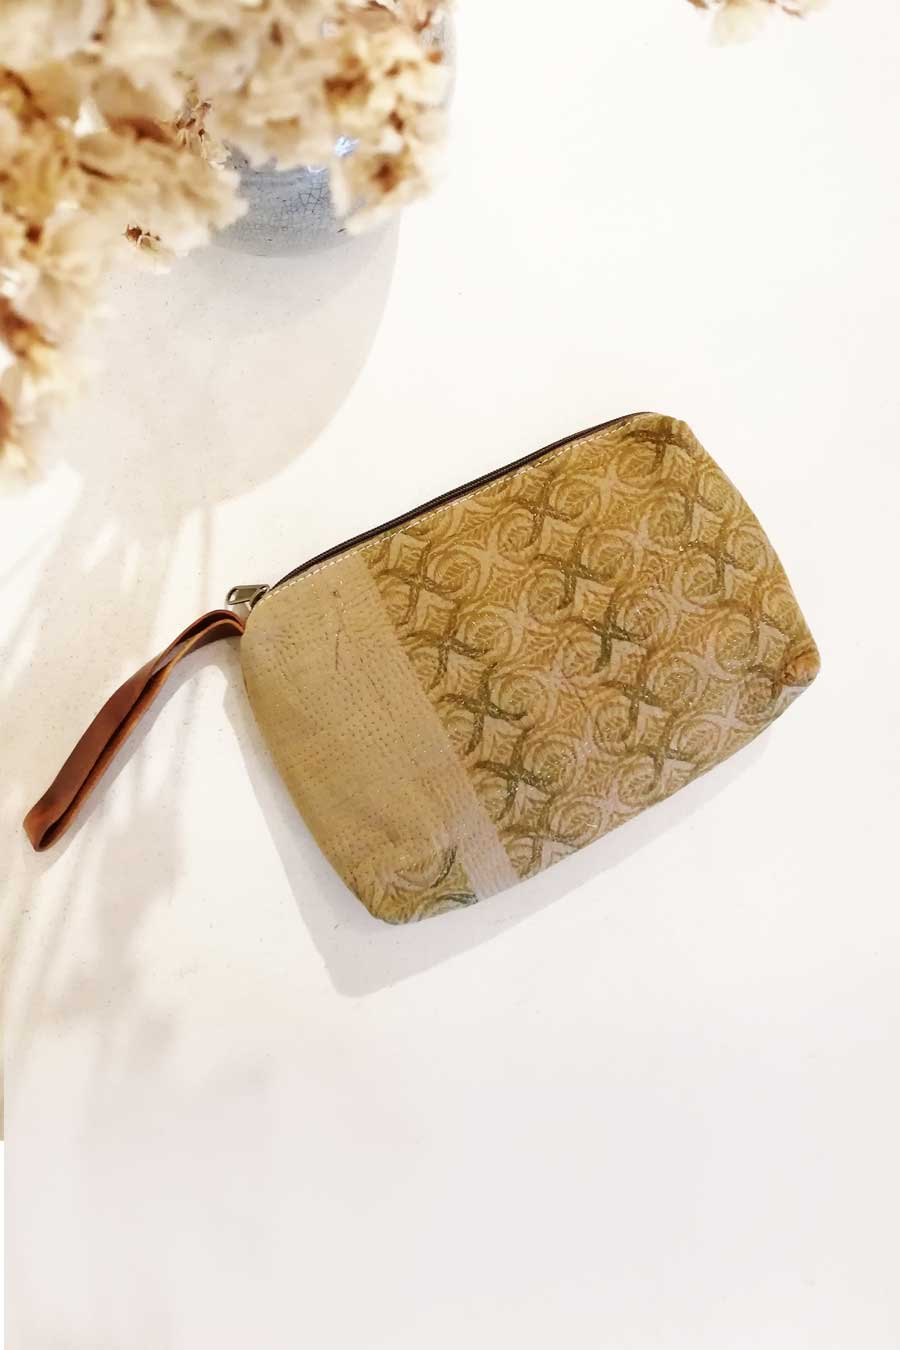 Block Print Olive Clutch Bag with Zipper